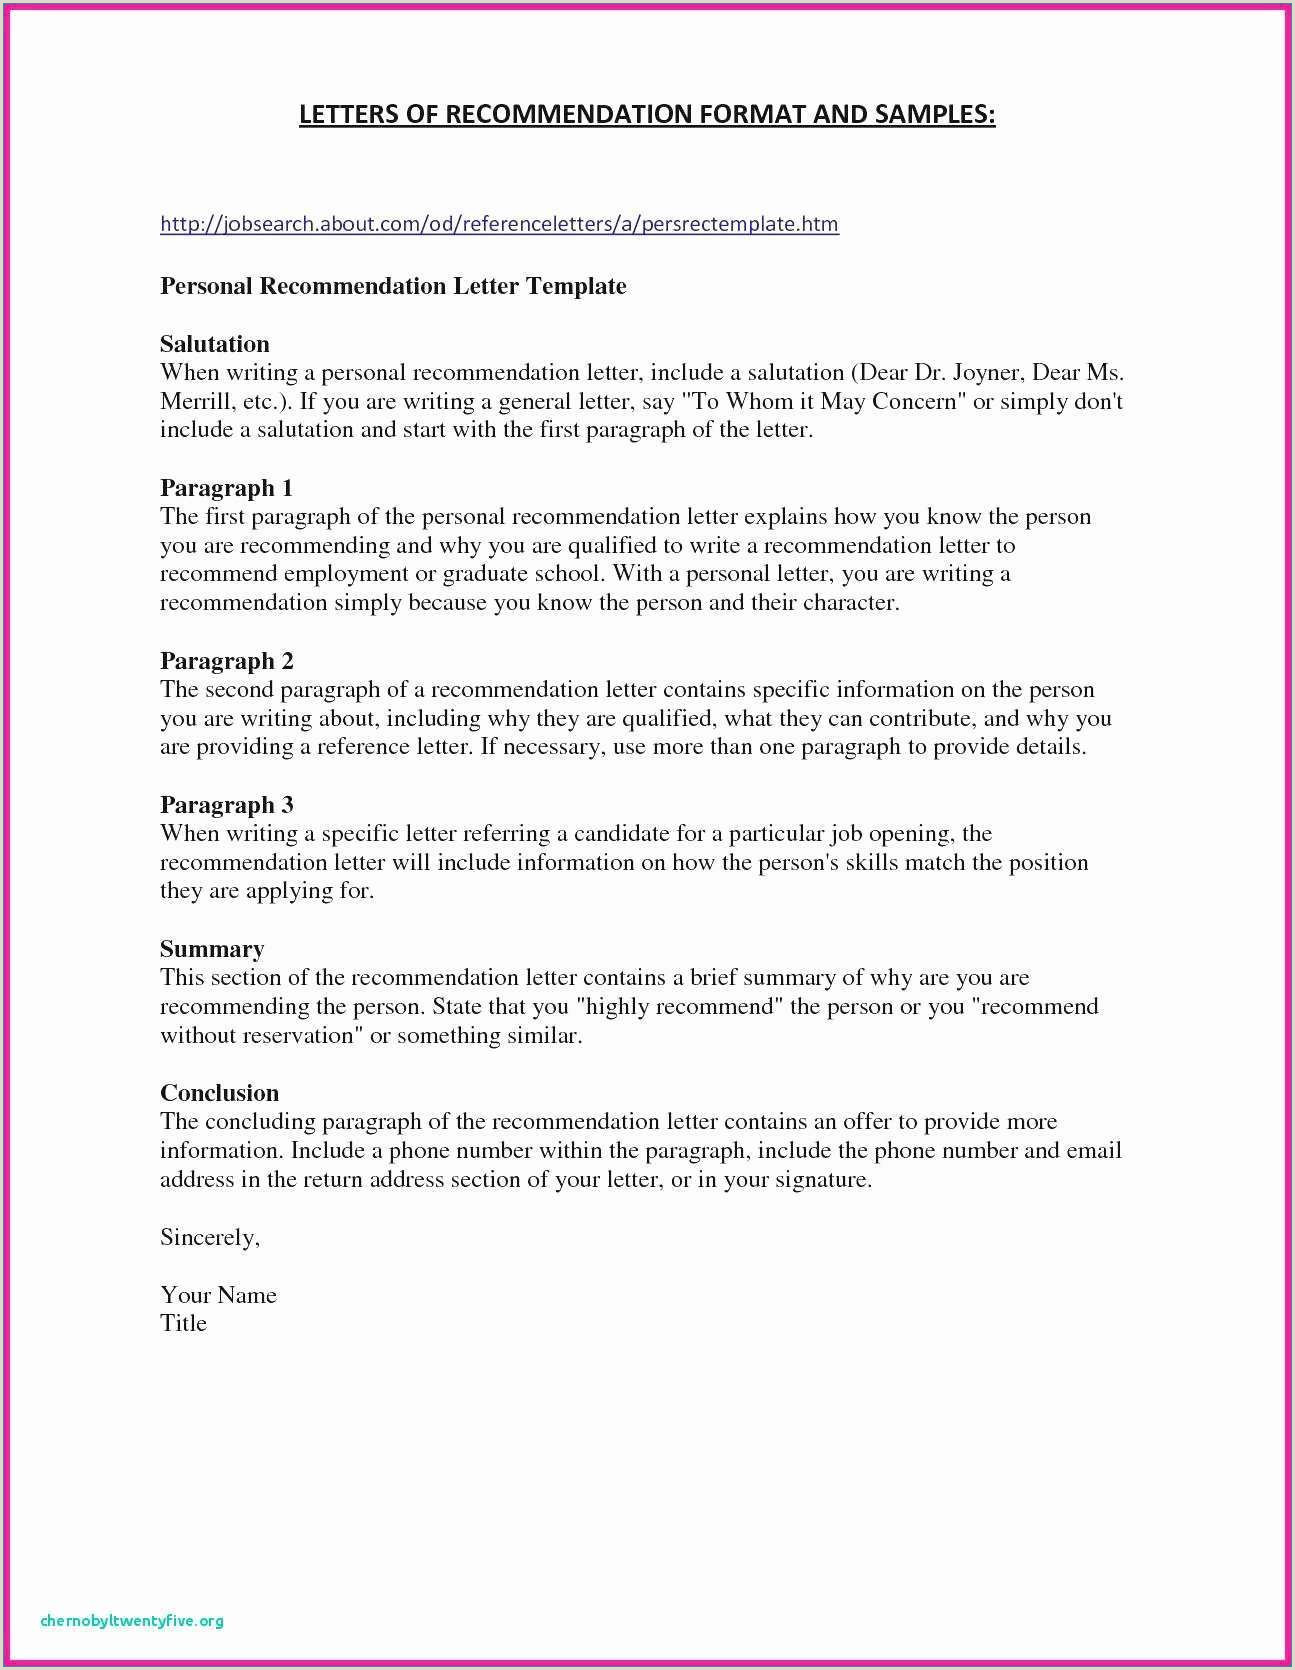 Project Management Cover Letter 10 Project Manager Cover Letter Samples